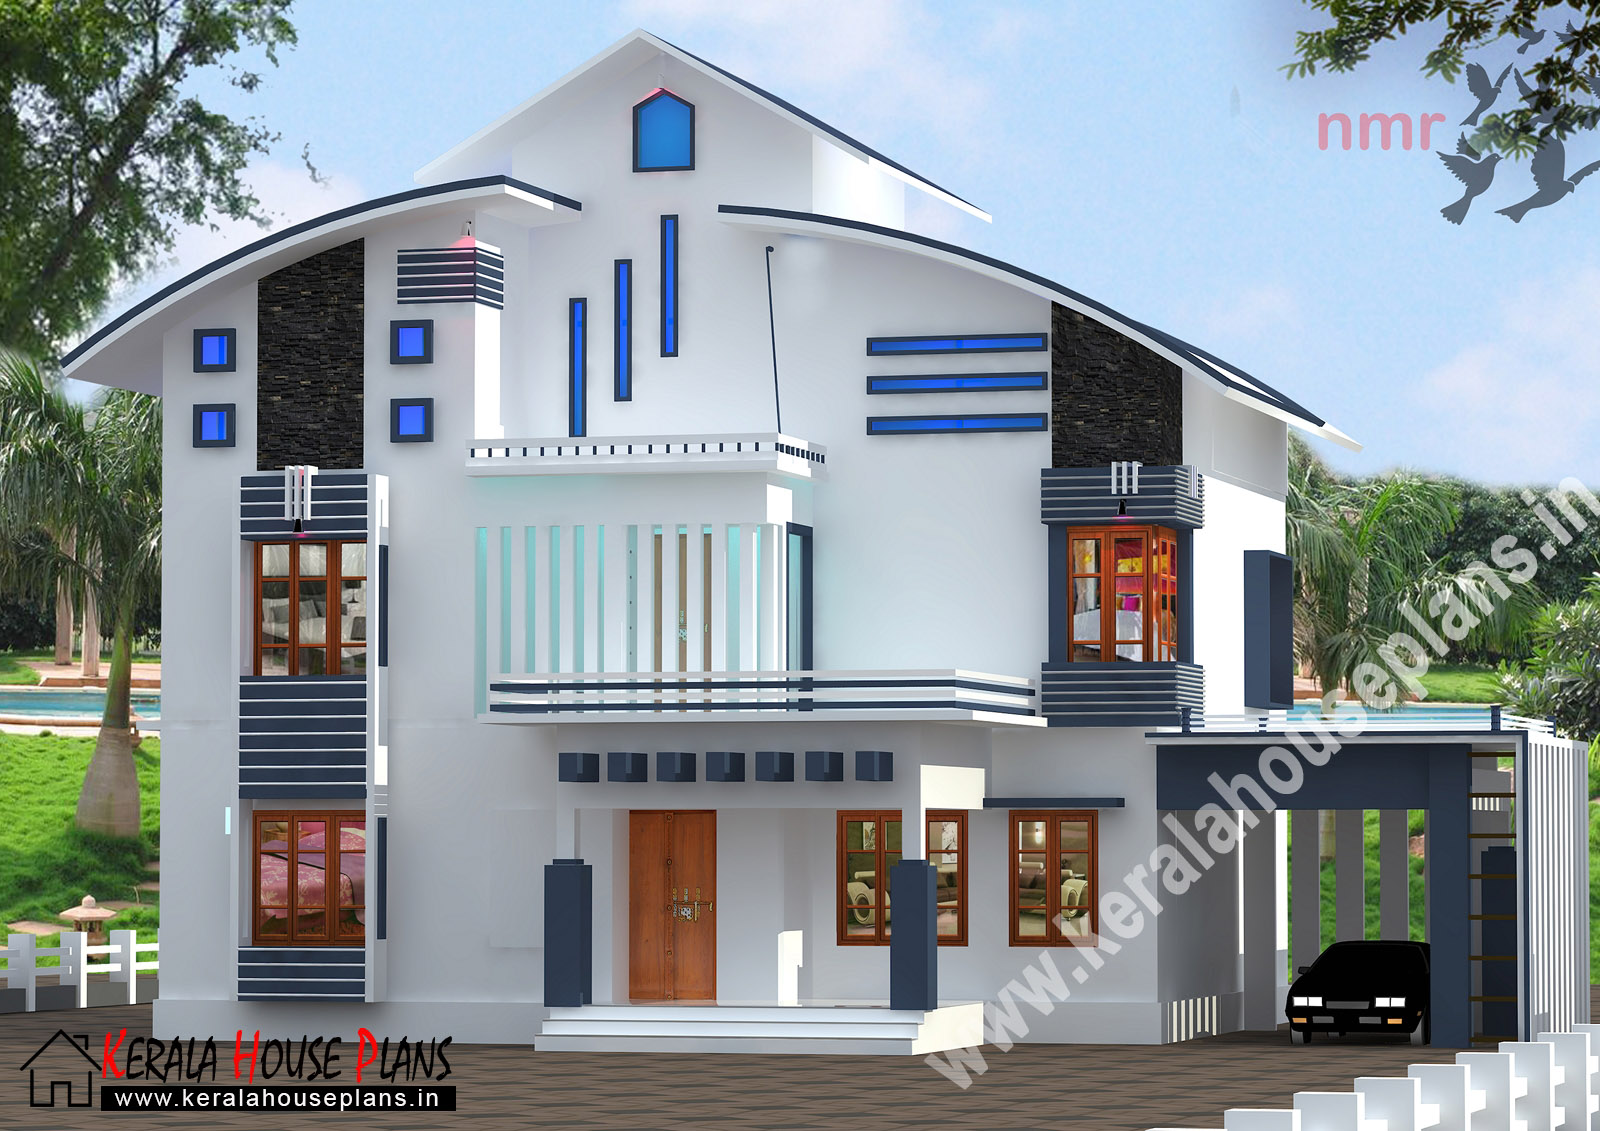 Kerala house plans and designs for Kerala house plans and designs